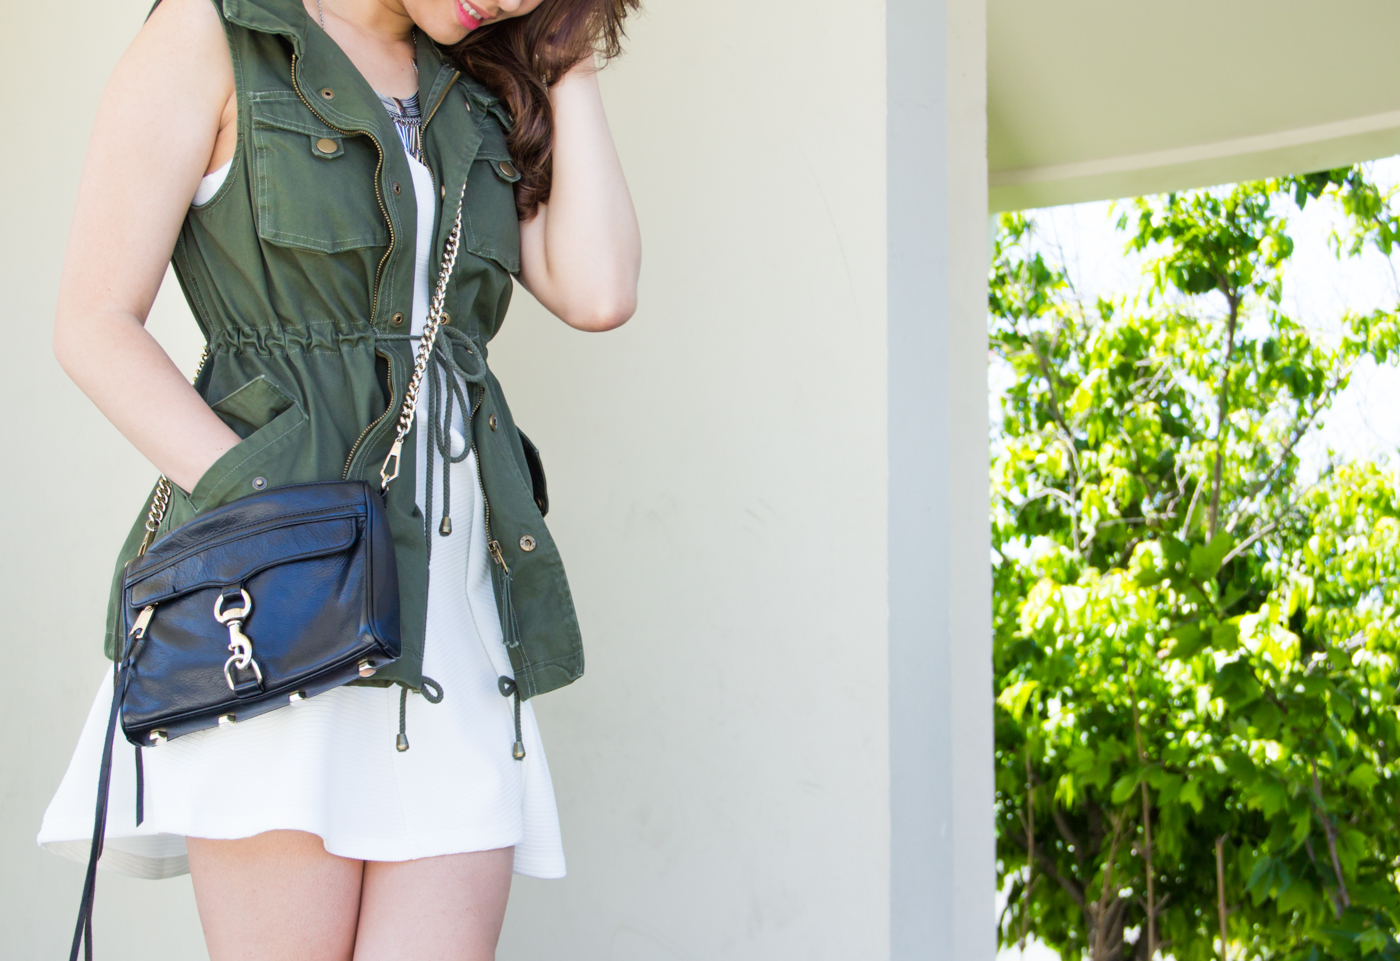 Drawstring cinched waist vest   via The Chic Diary